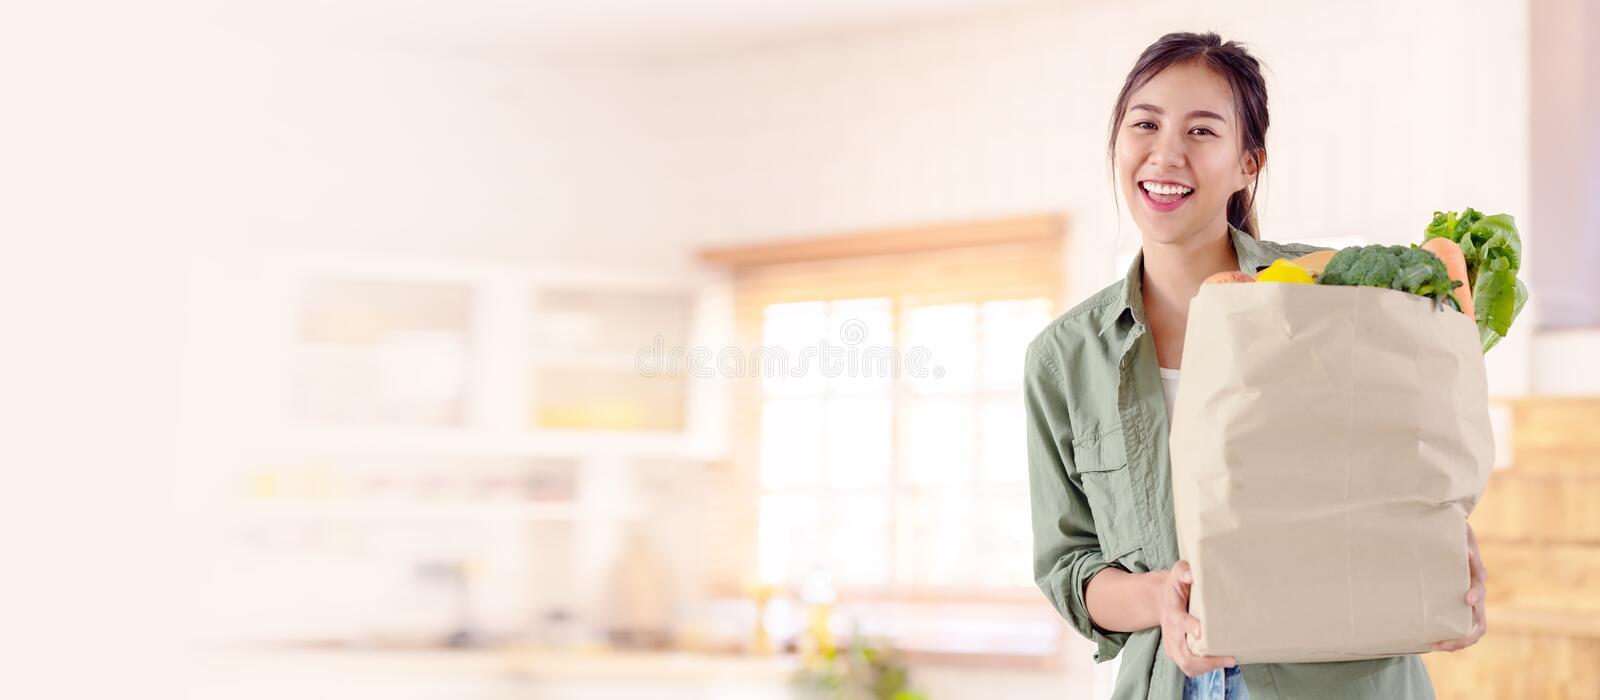 Headshot of young attractive asian girl, housewife or single lady holding groceries paper bag looking and smiling to camera in royalty free stock photo